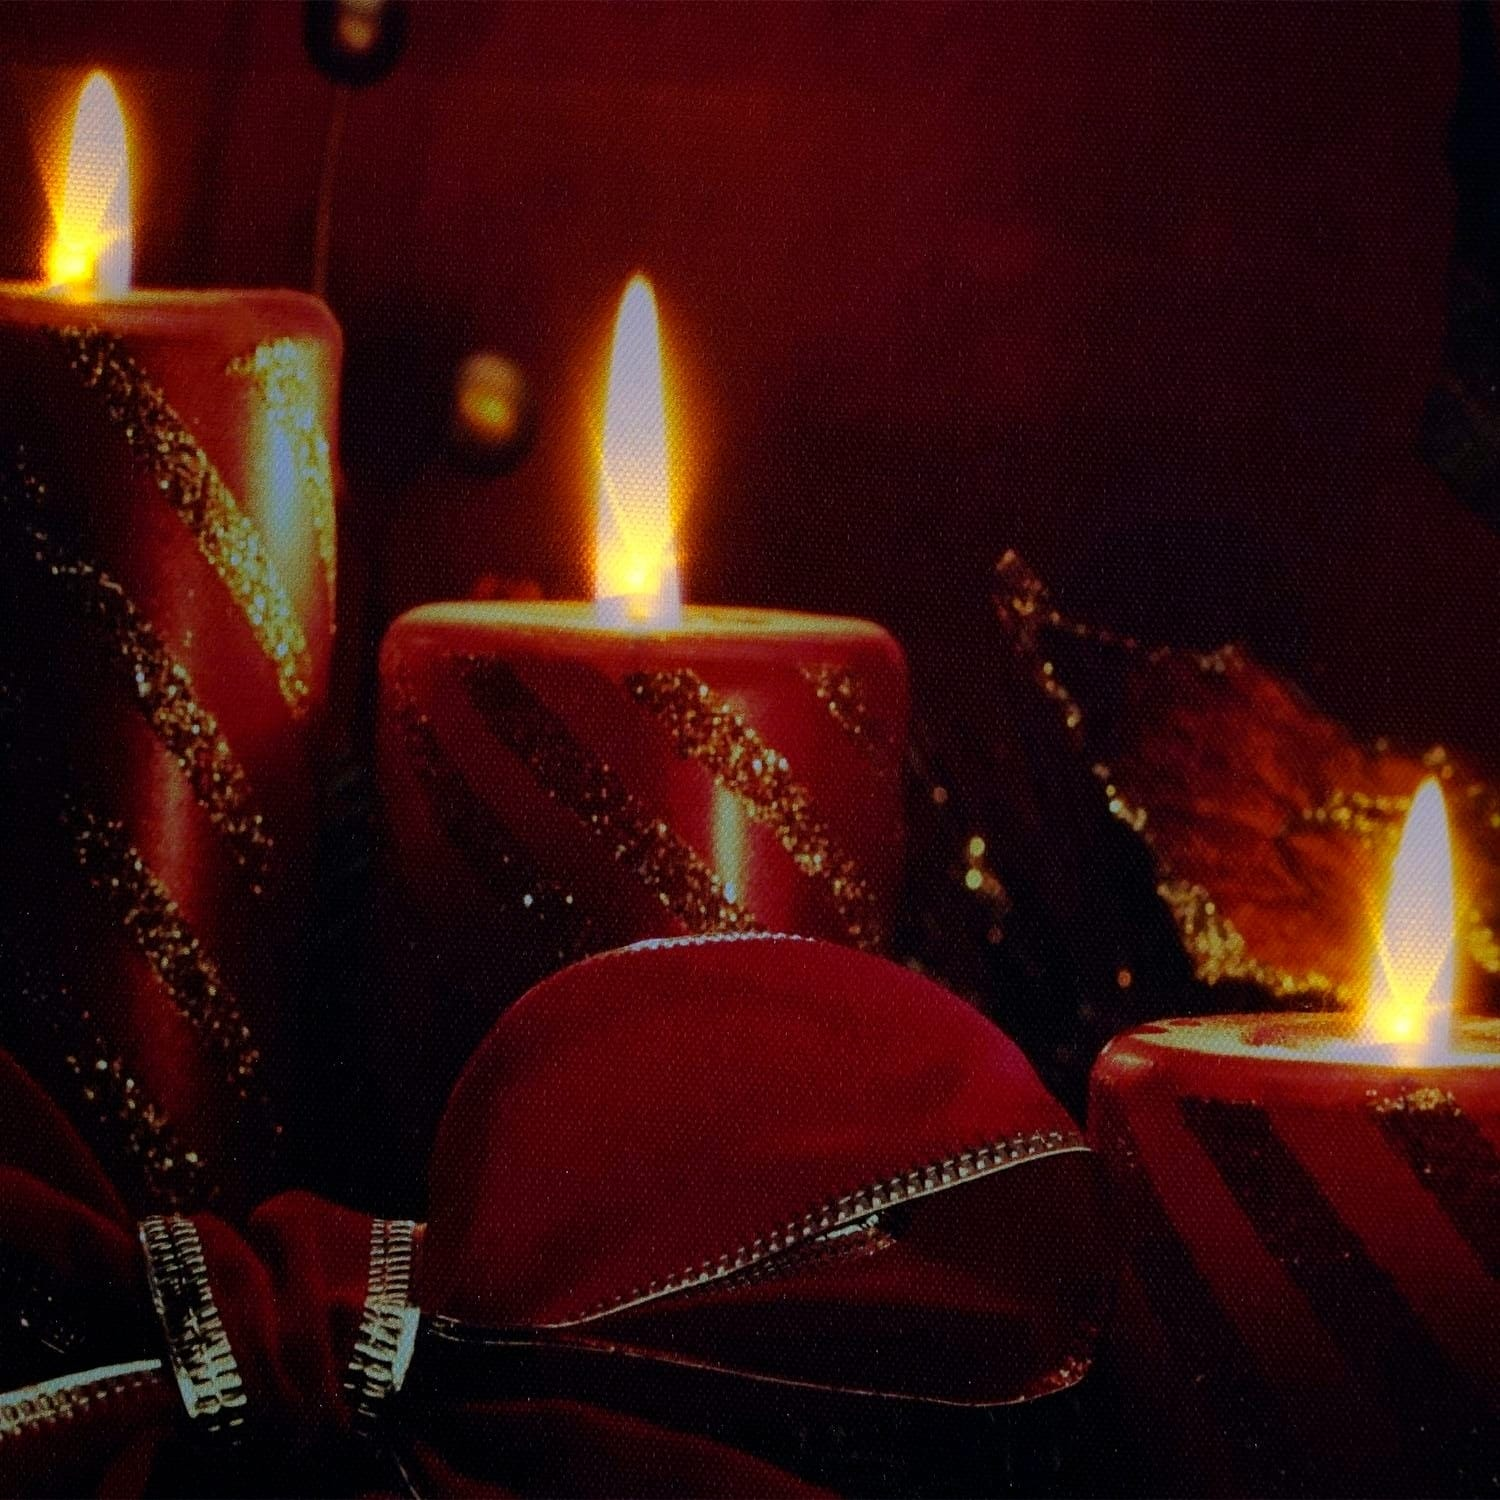 Led Lighted Red Glitter Striped Candles With Poinsettia & Bow